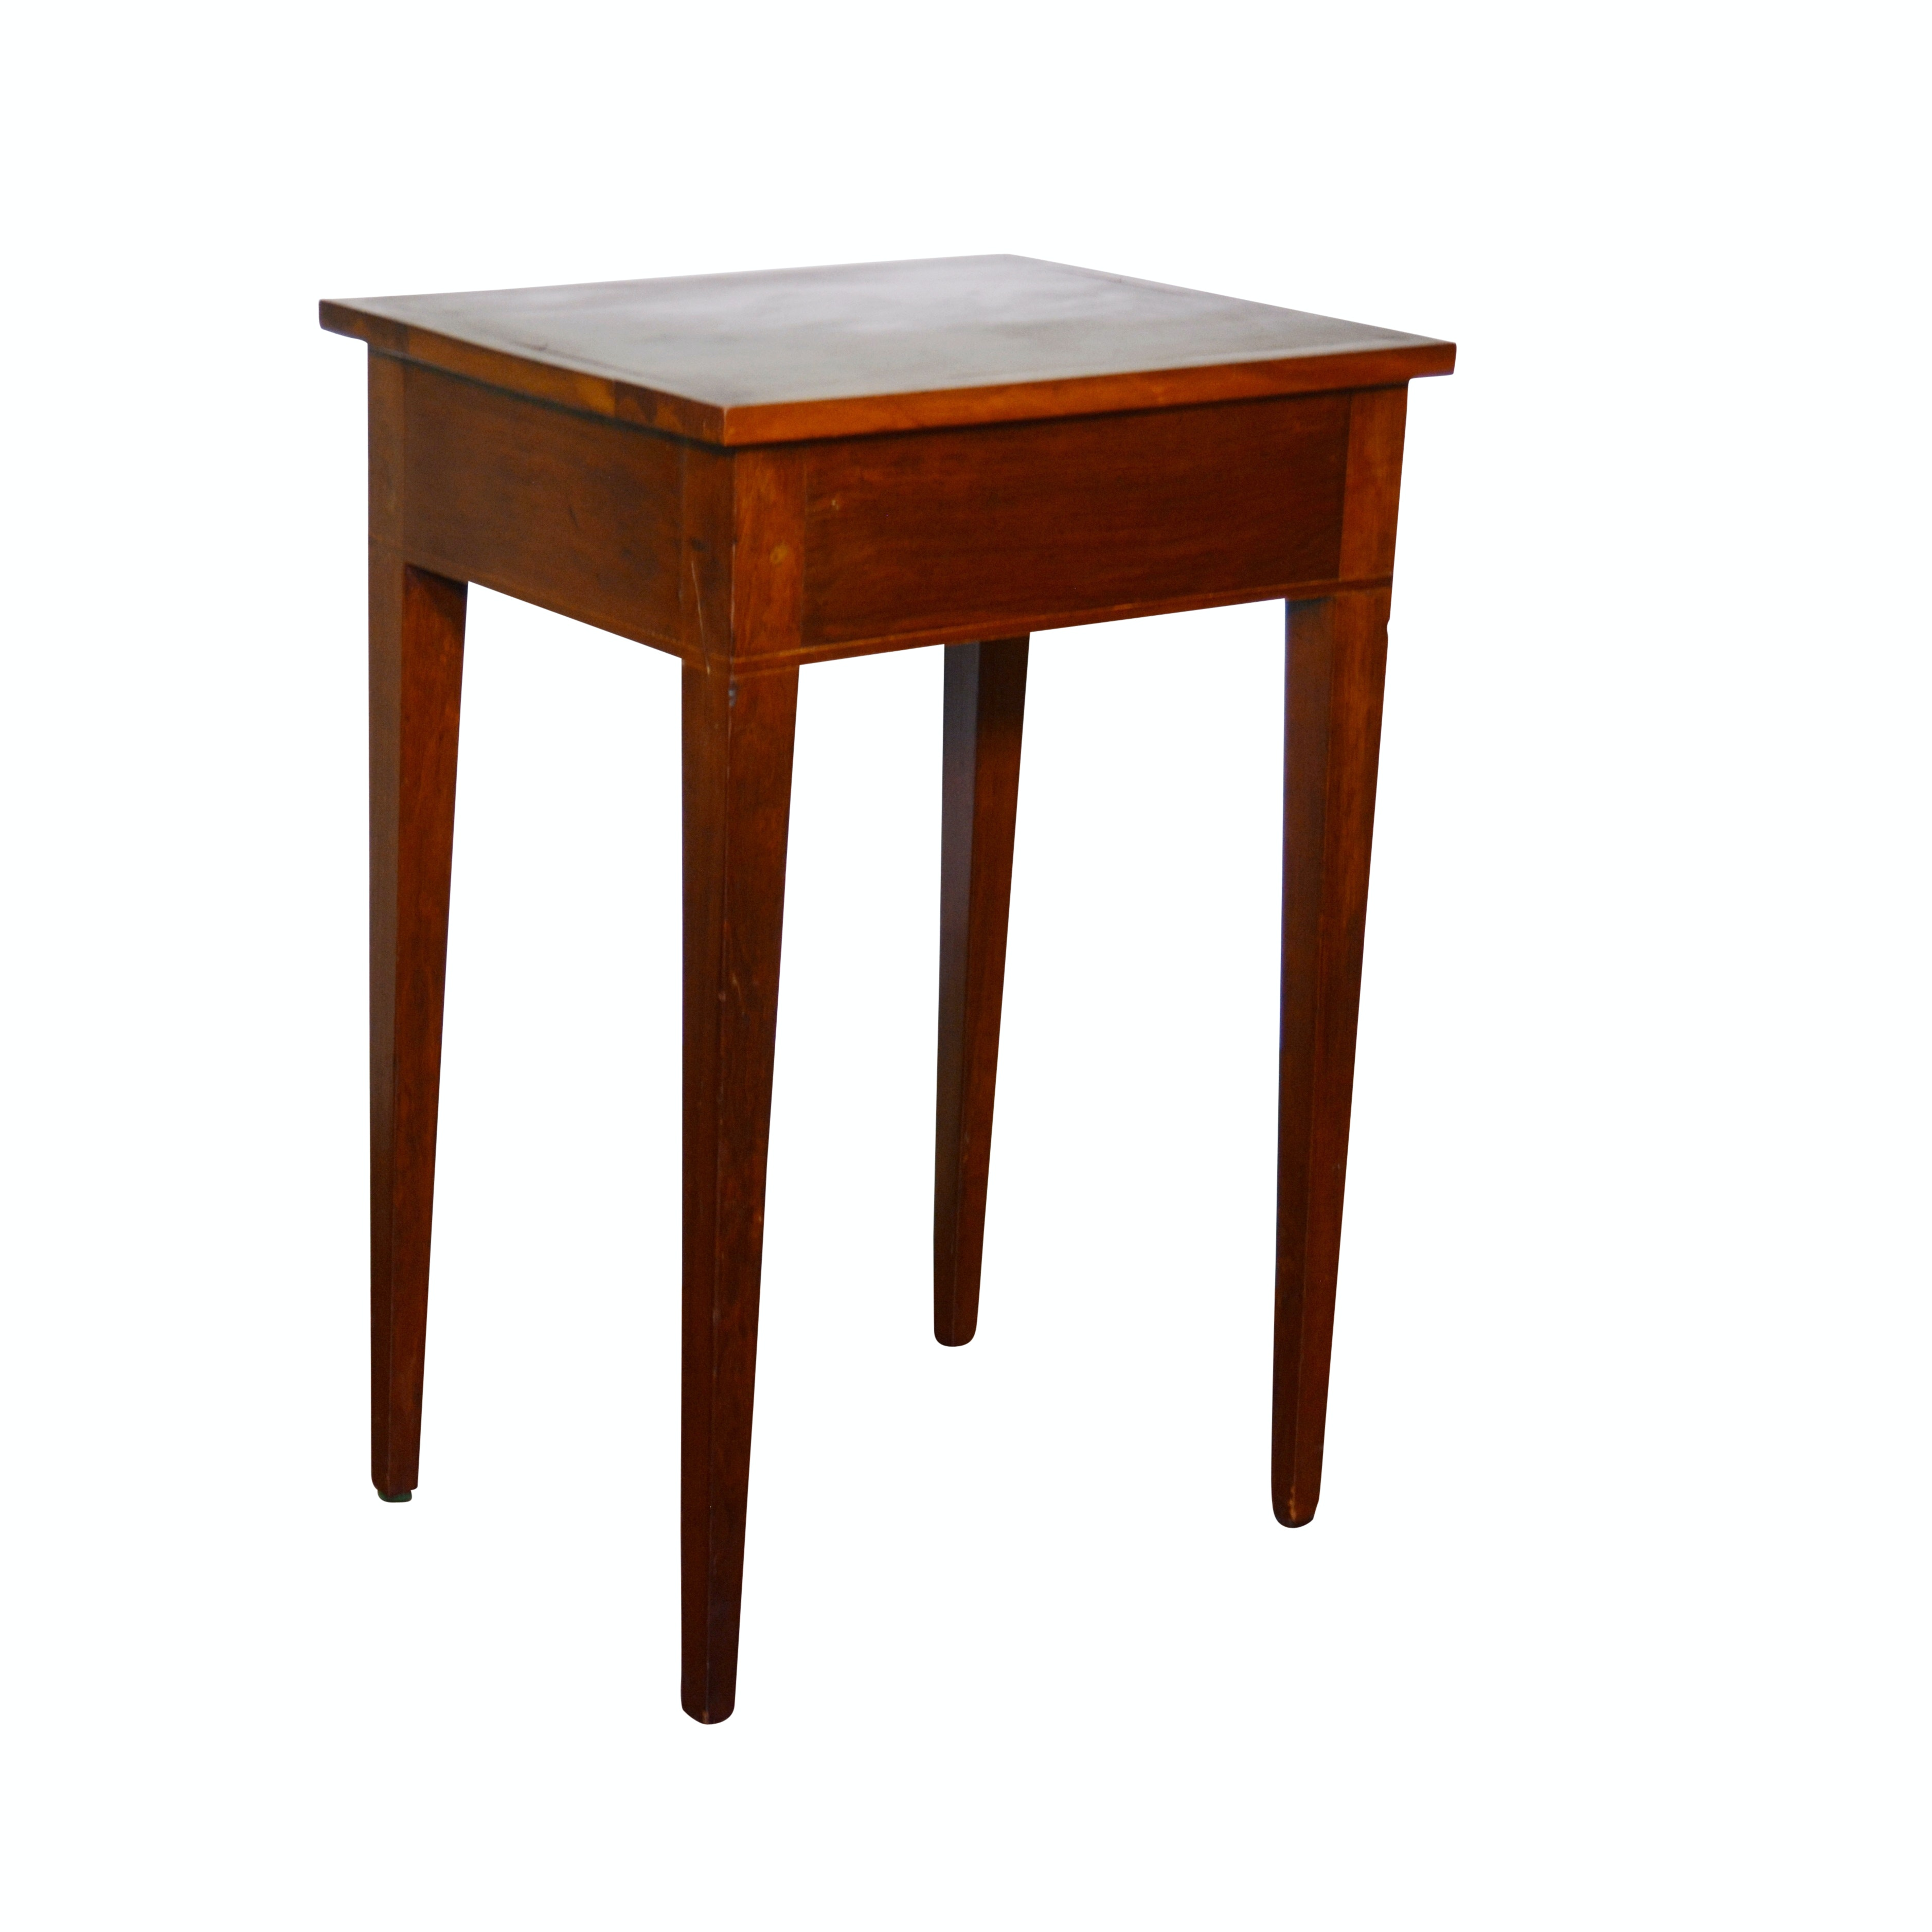 Federal Style String-Inlaid Cherry Side Table, 19th Century